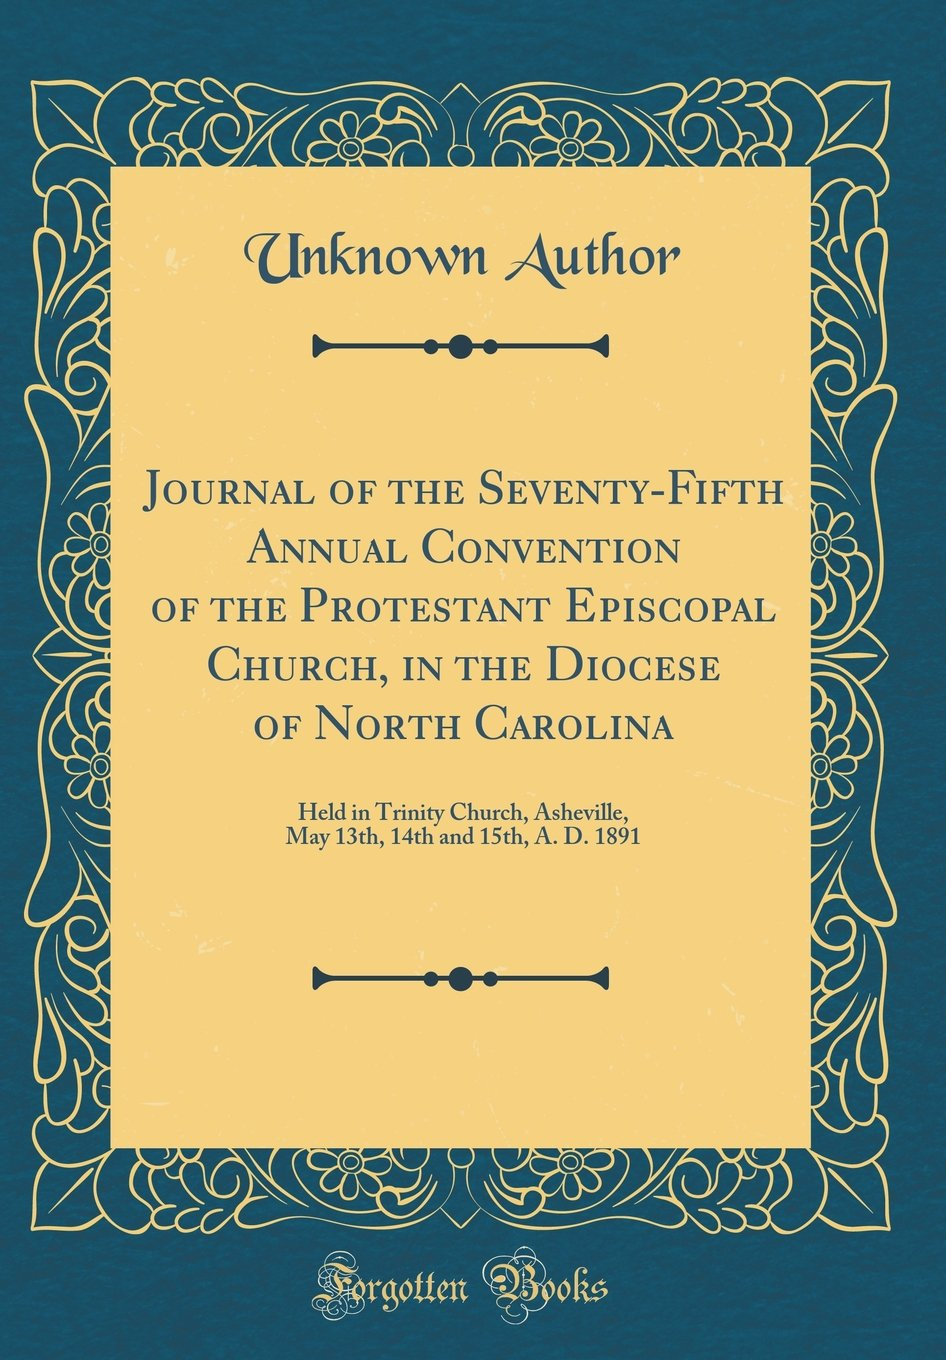 Journal of the Seventy-Fifth Annual Convention of the Protestant Episcopal Church, in the Diocese of North Carolina: Held in Trinity Church, ... 14th and 15th, A. D. 1891 (Classic Reprint) pdf